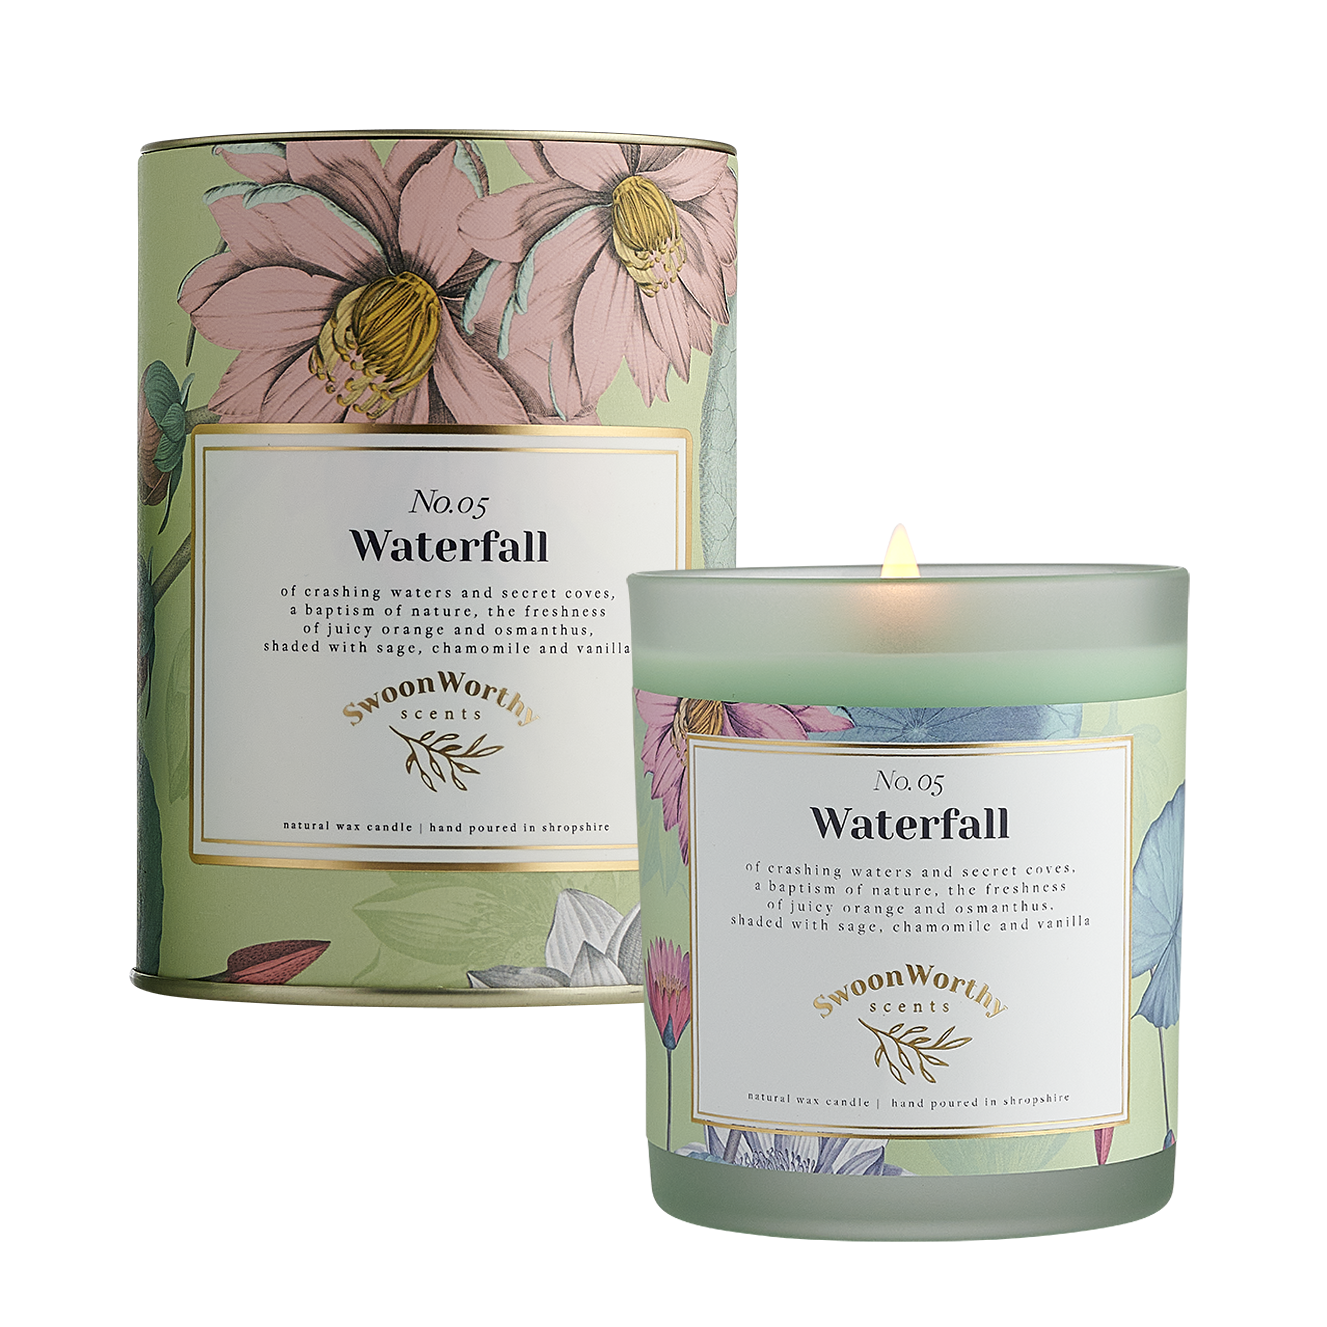 No 5 Waterfall Candle lit & Packaging square